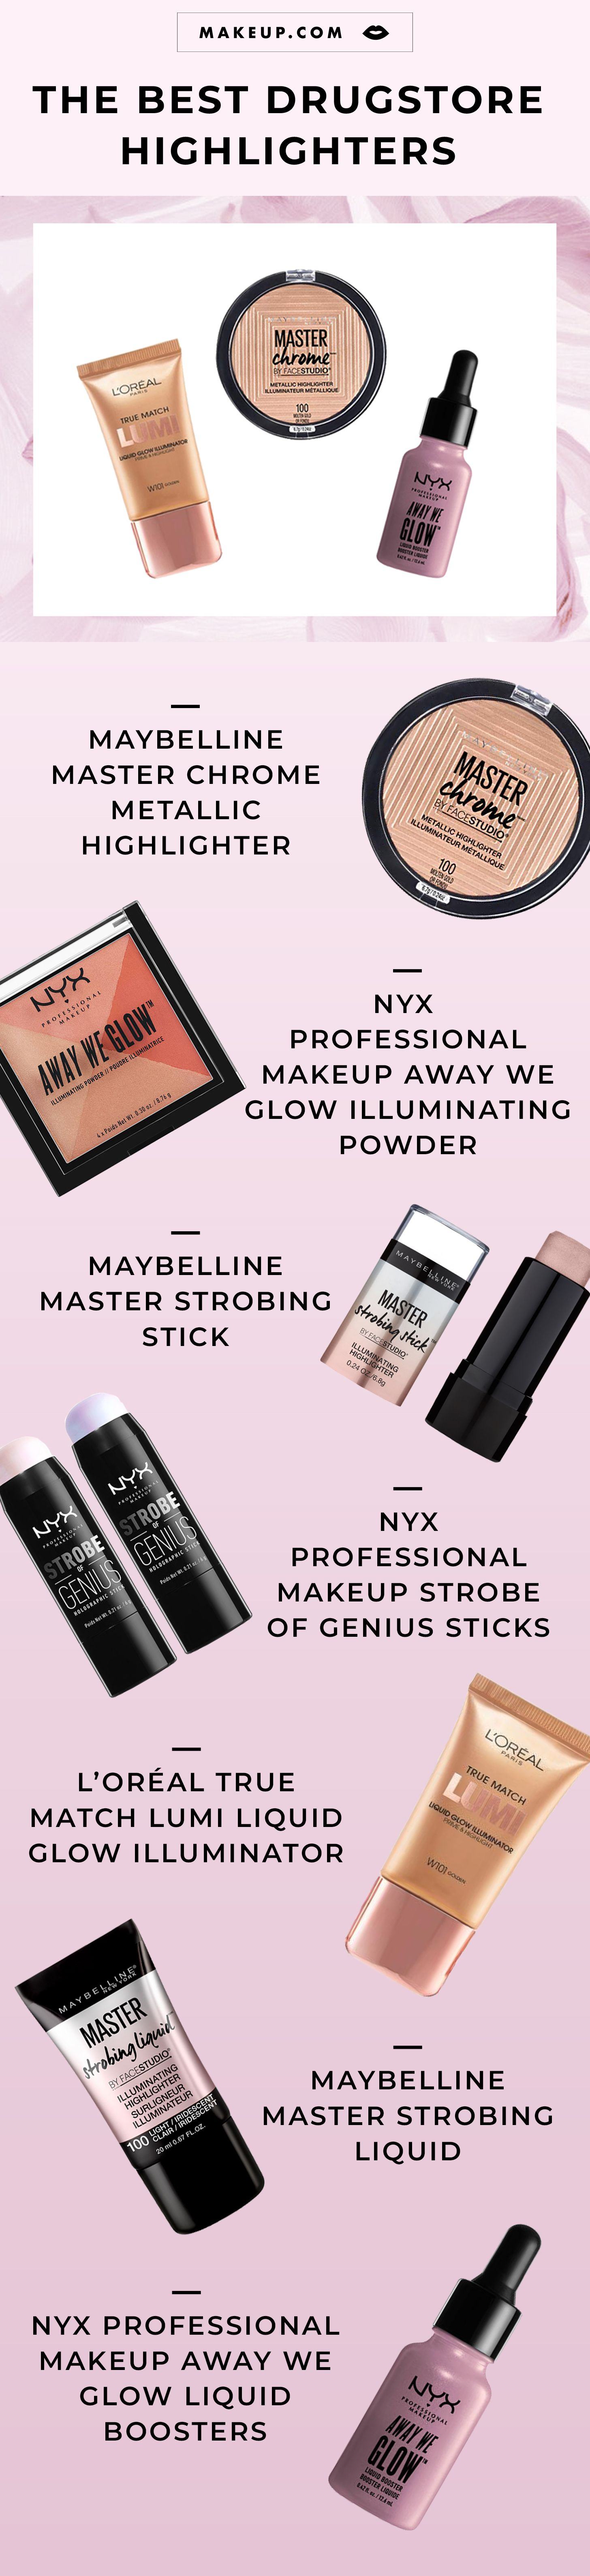 The Best Drugstore Highlighters Makeup Com By L Oréal Drugstore Highlighter Beauty Products Drugstore Maybelline Master Strobing Stick